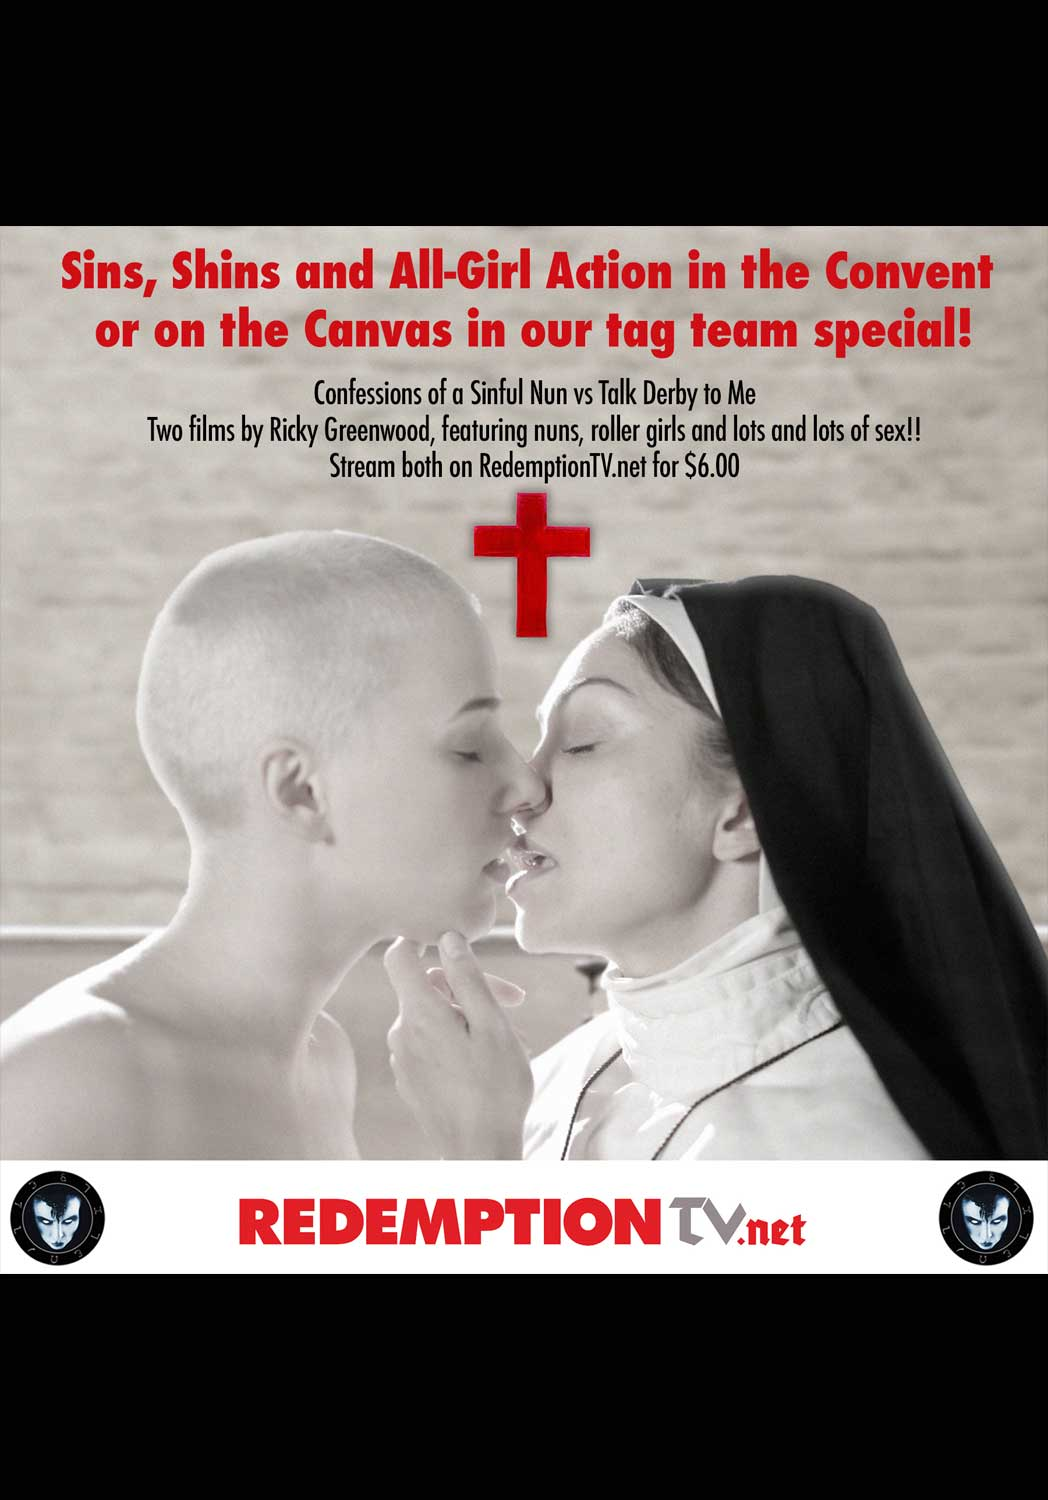 Stream two ricky greenwood films - sins and shins, with confessions of a sinful nun, and talk derby to me